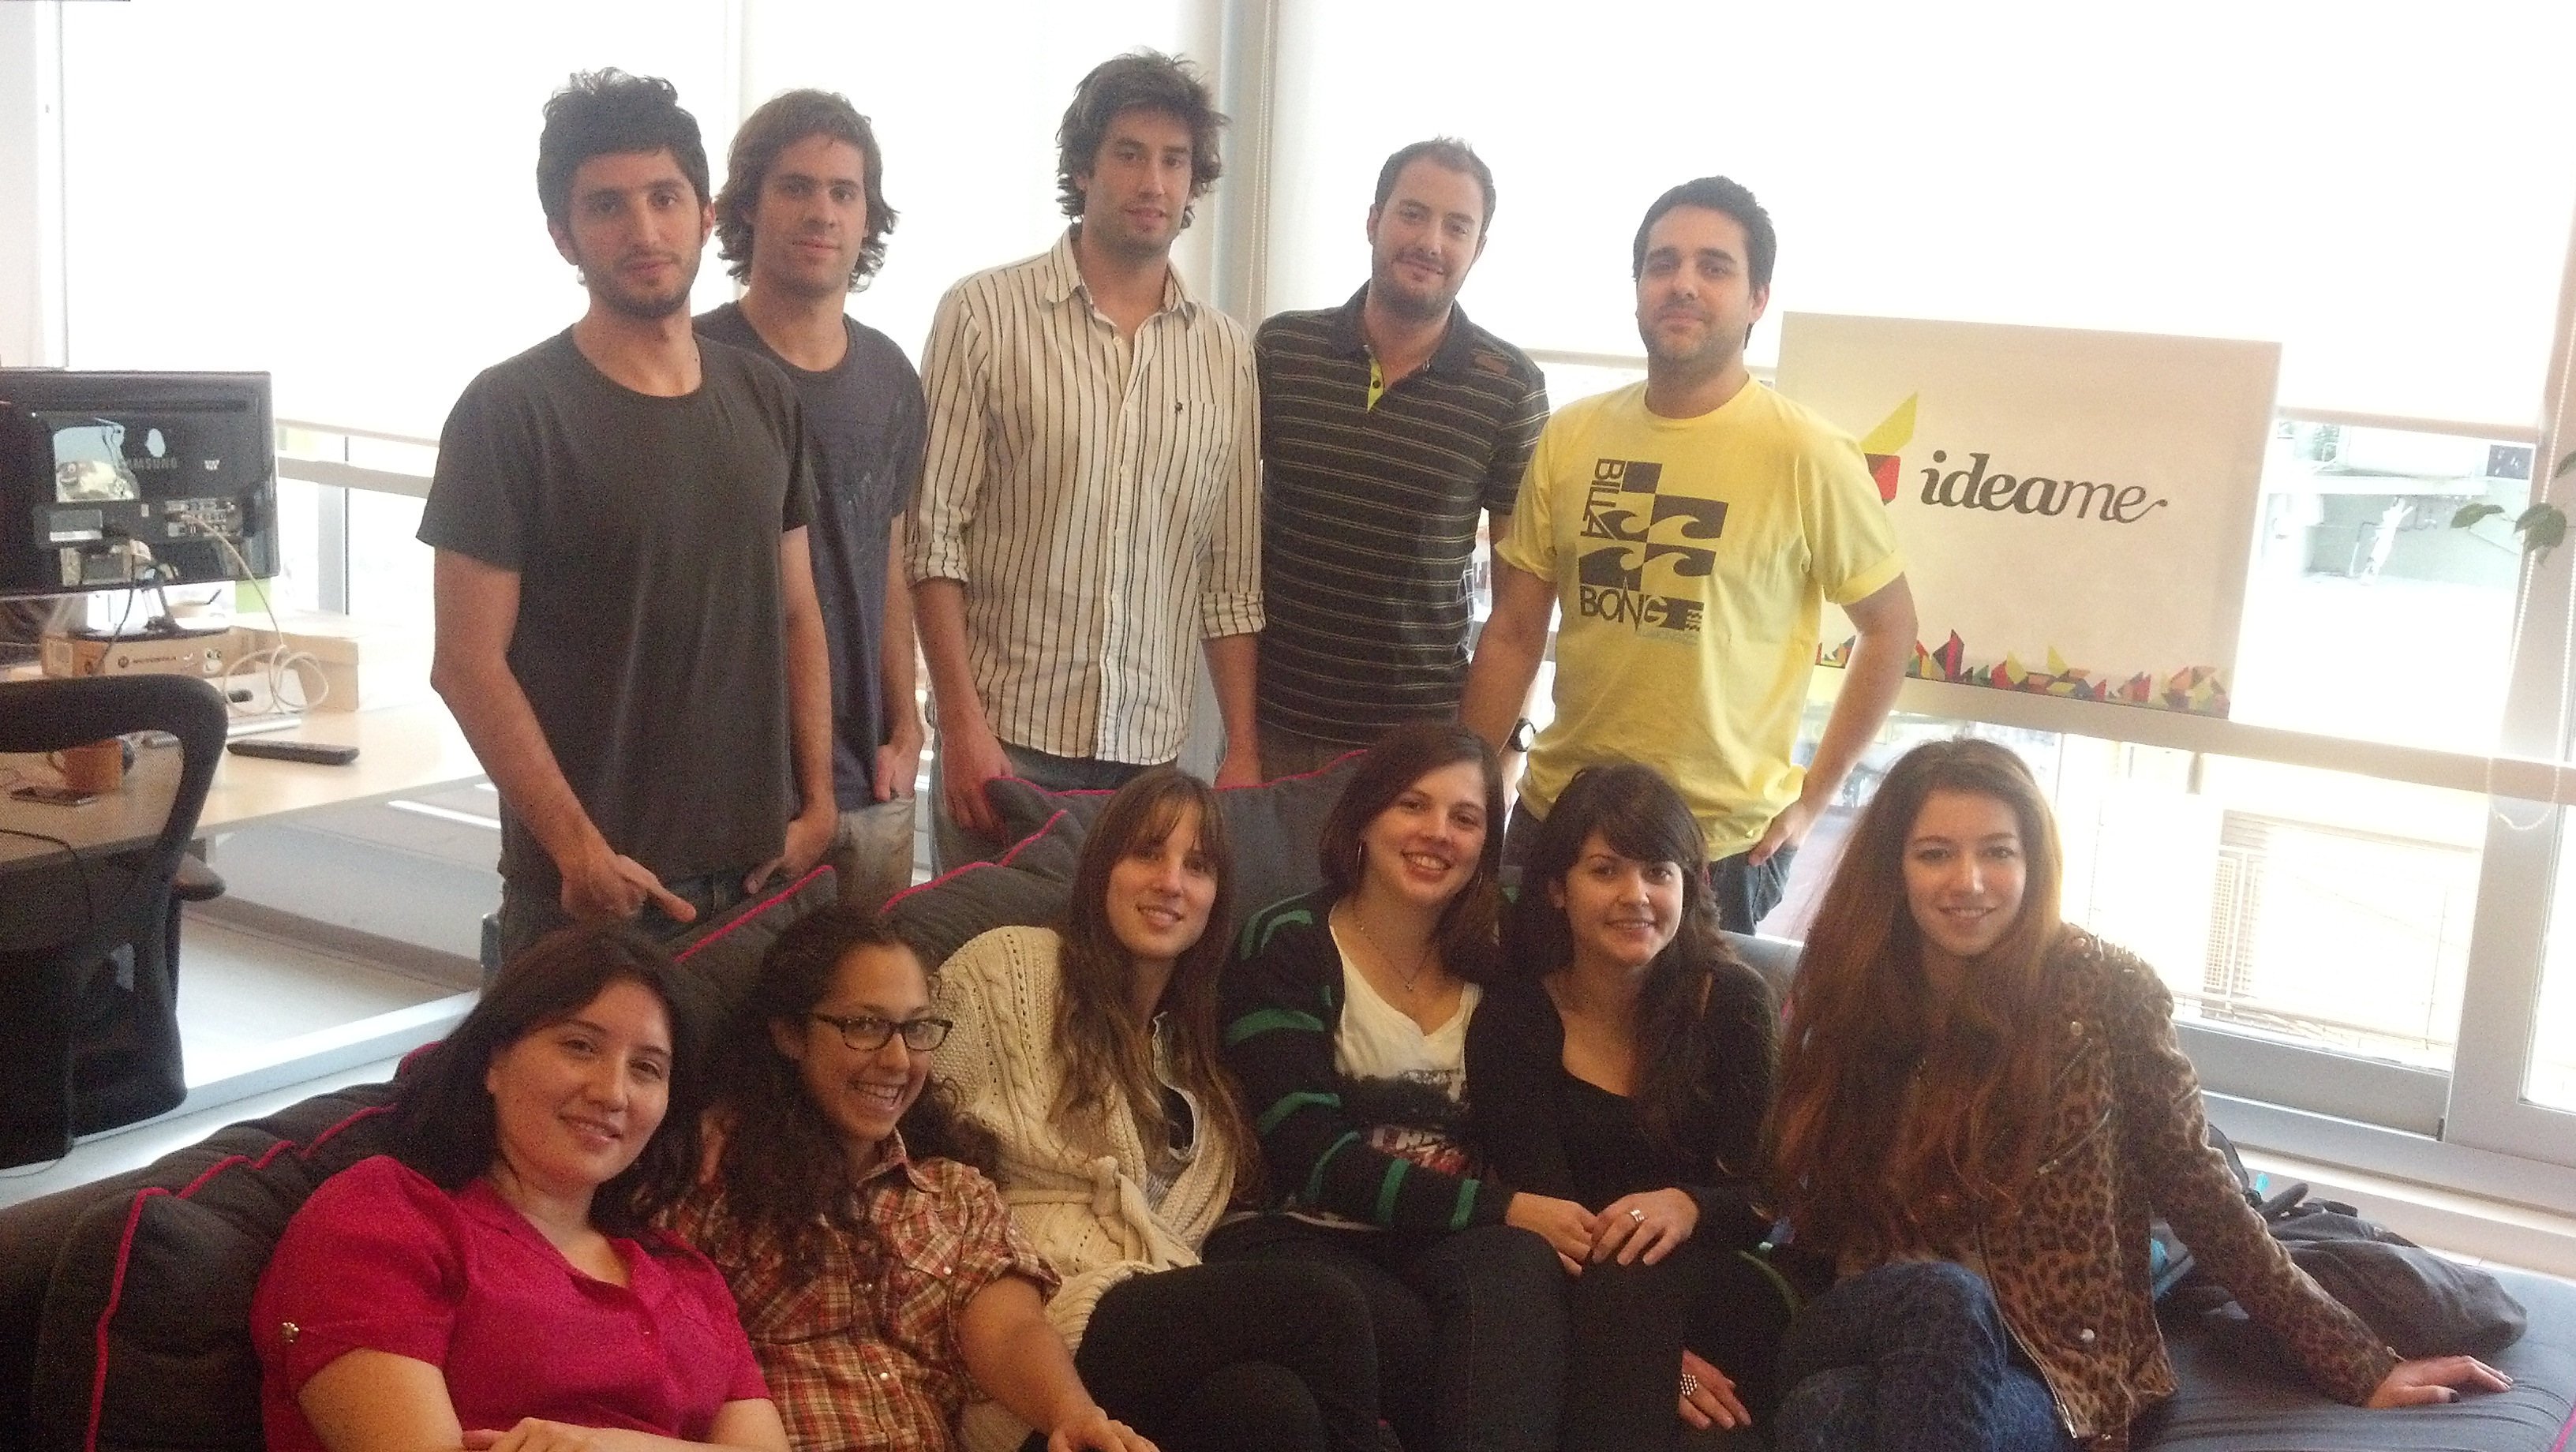 Idea.me buys Brazil's Movere to become Latin America's largest crowdfunding website